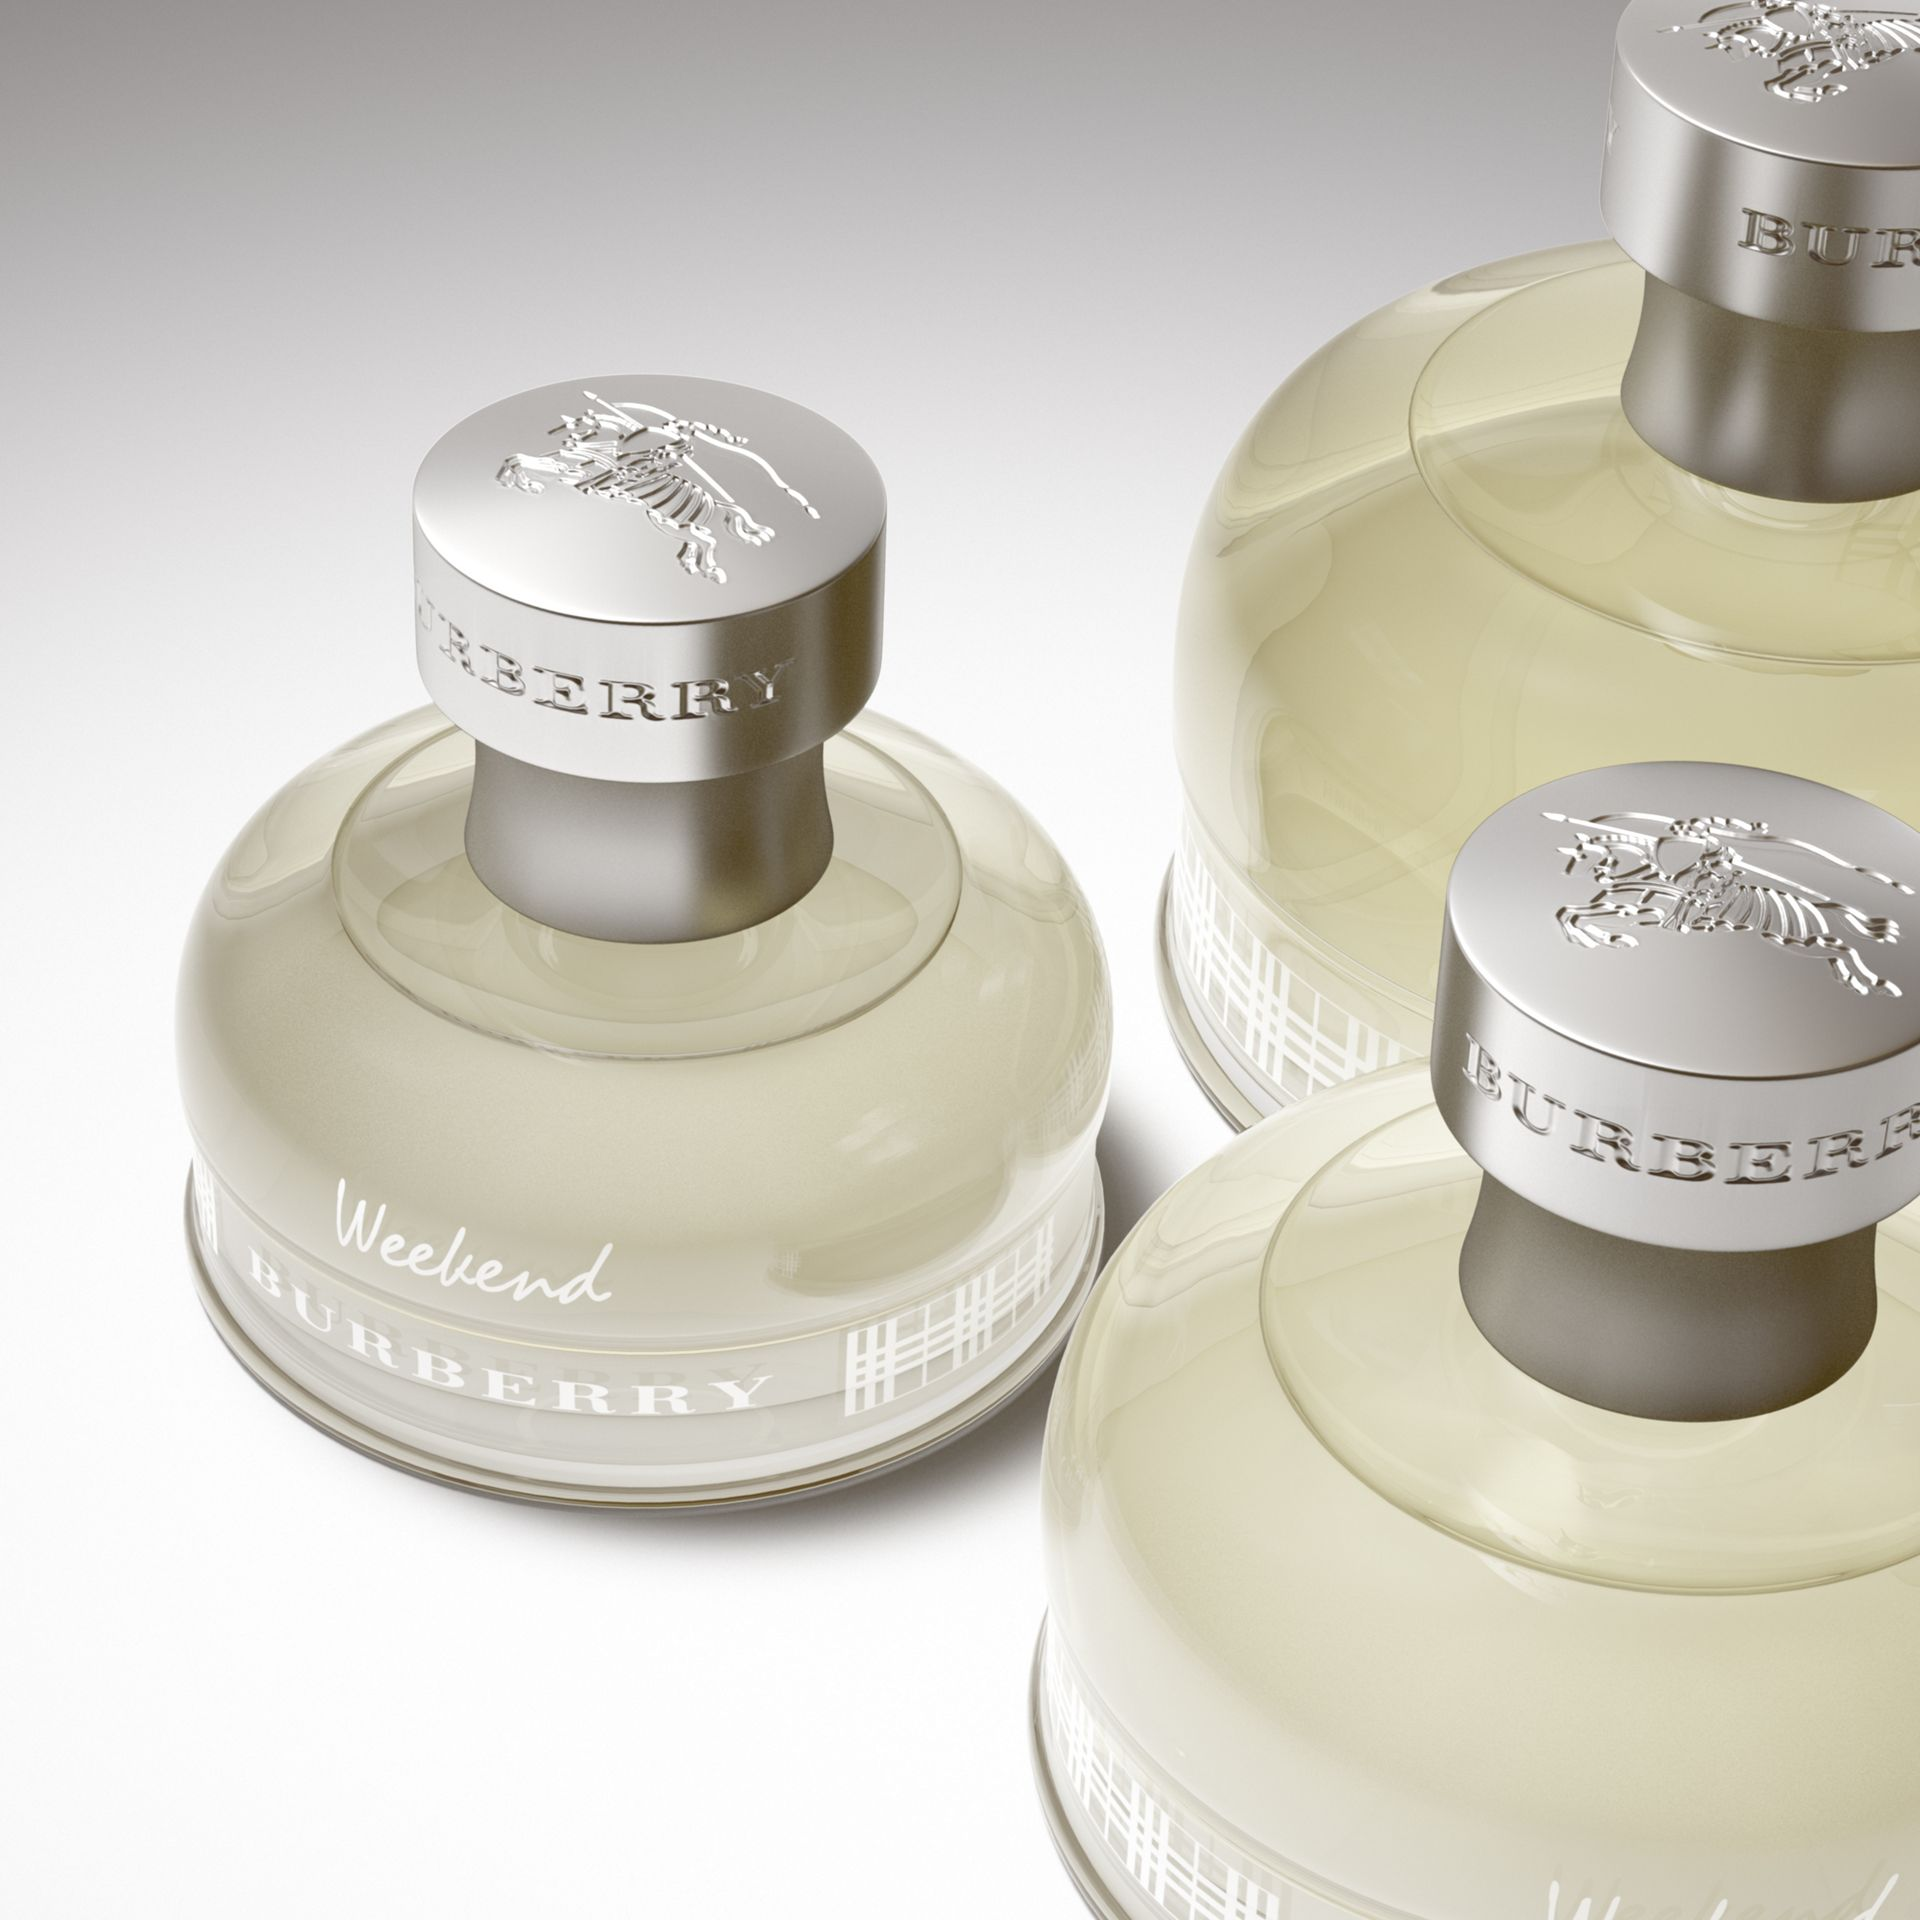 Burberry Weekend Eau De Parfum für Damen 30 ml - Galerie-Bild 2